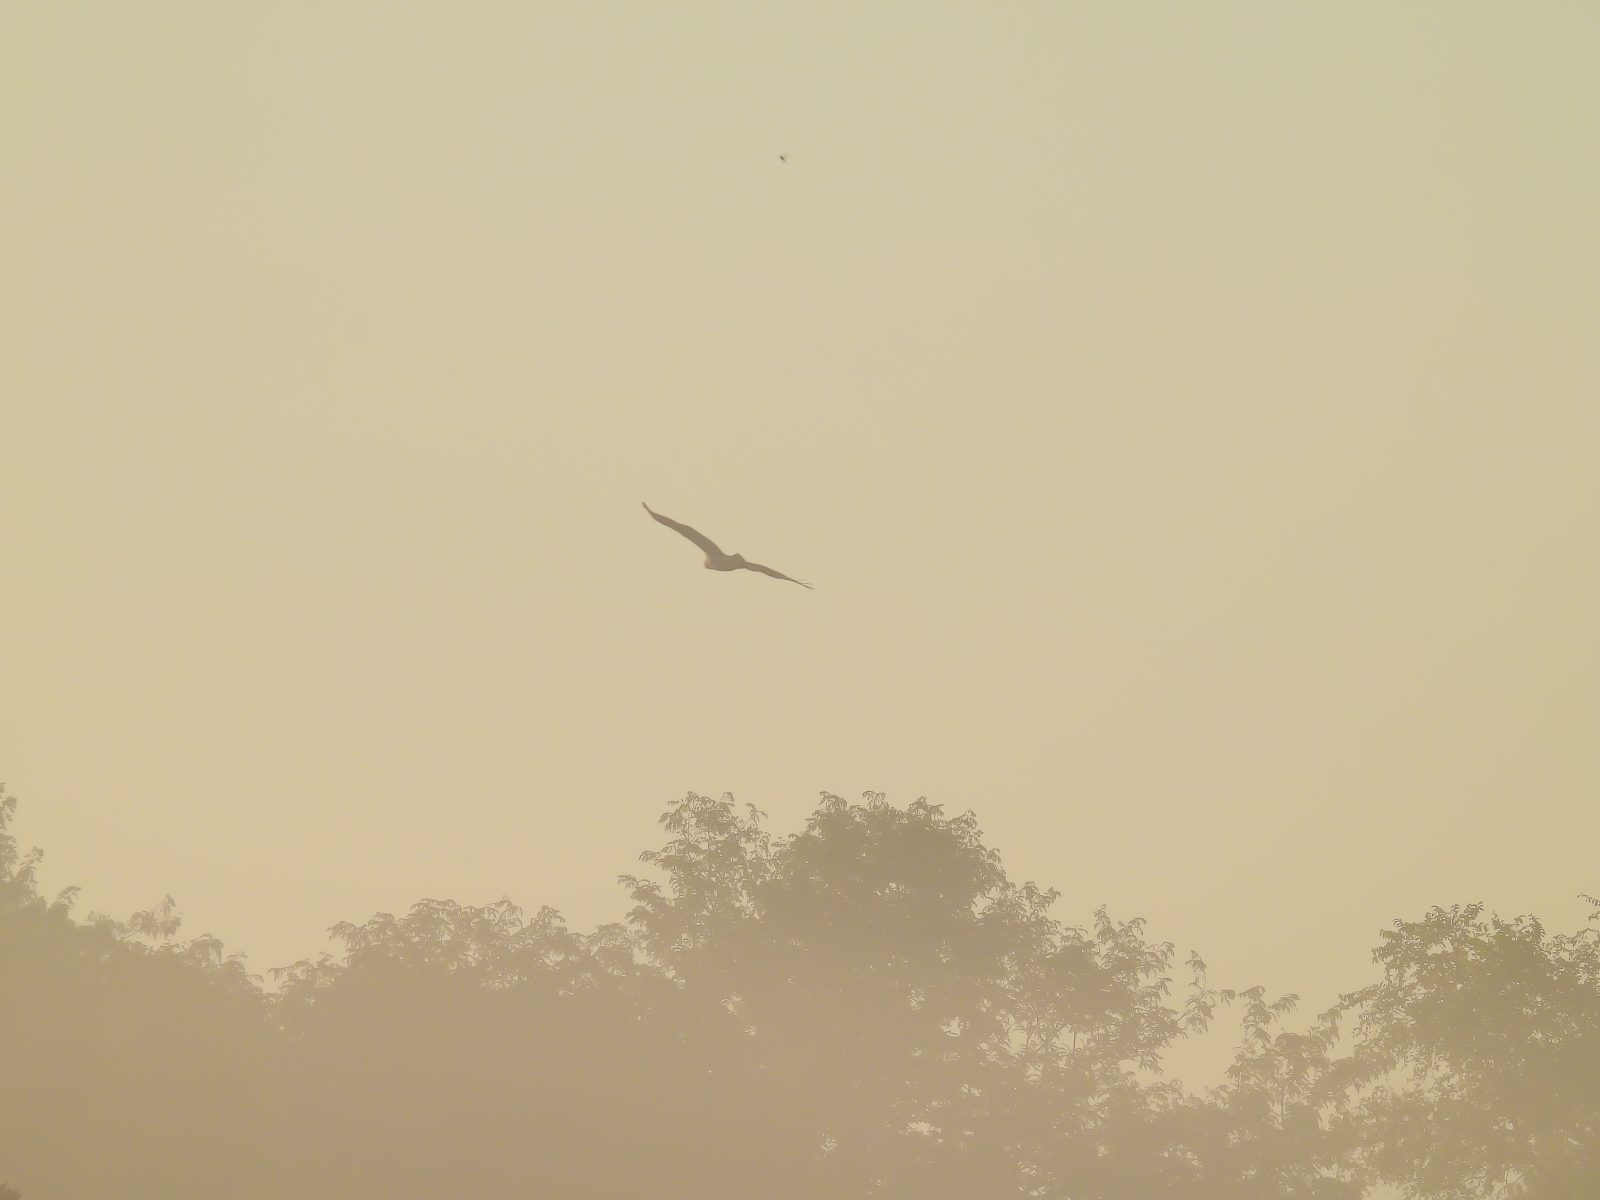 Red-Tailed Hawk in Flight on Warm, Misty Summer Morning Over Prairie